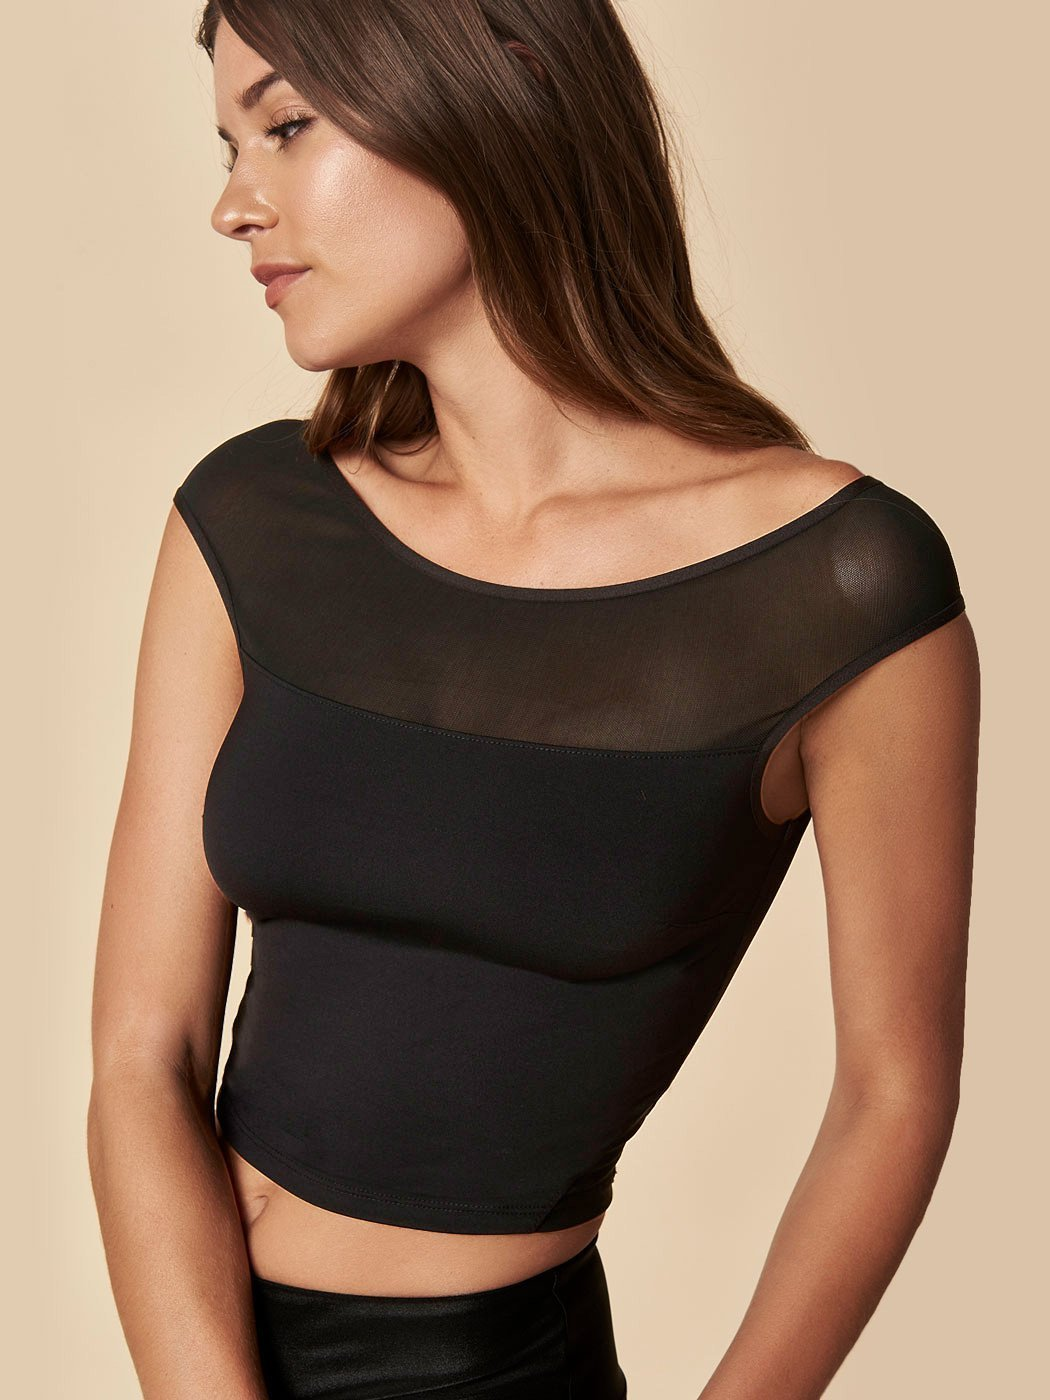 Spinoff Mesh Top, Final Sale